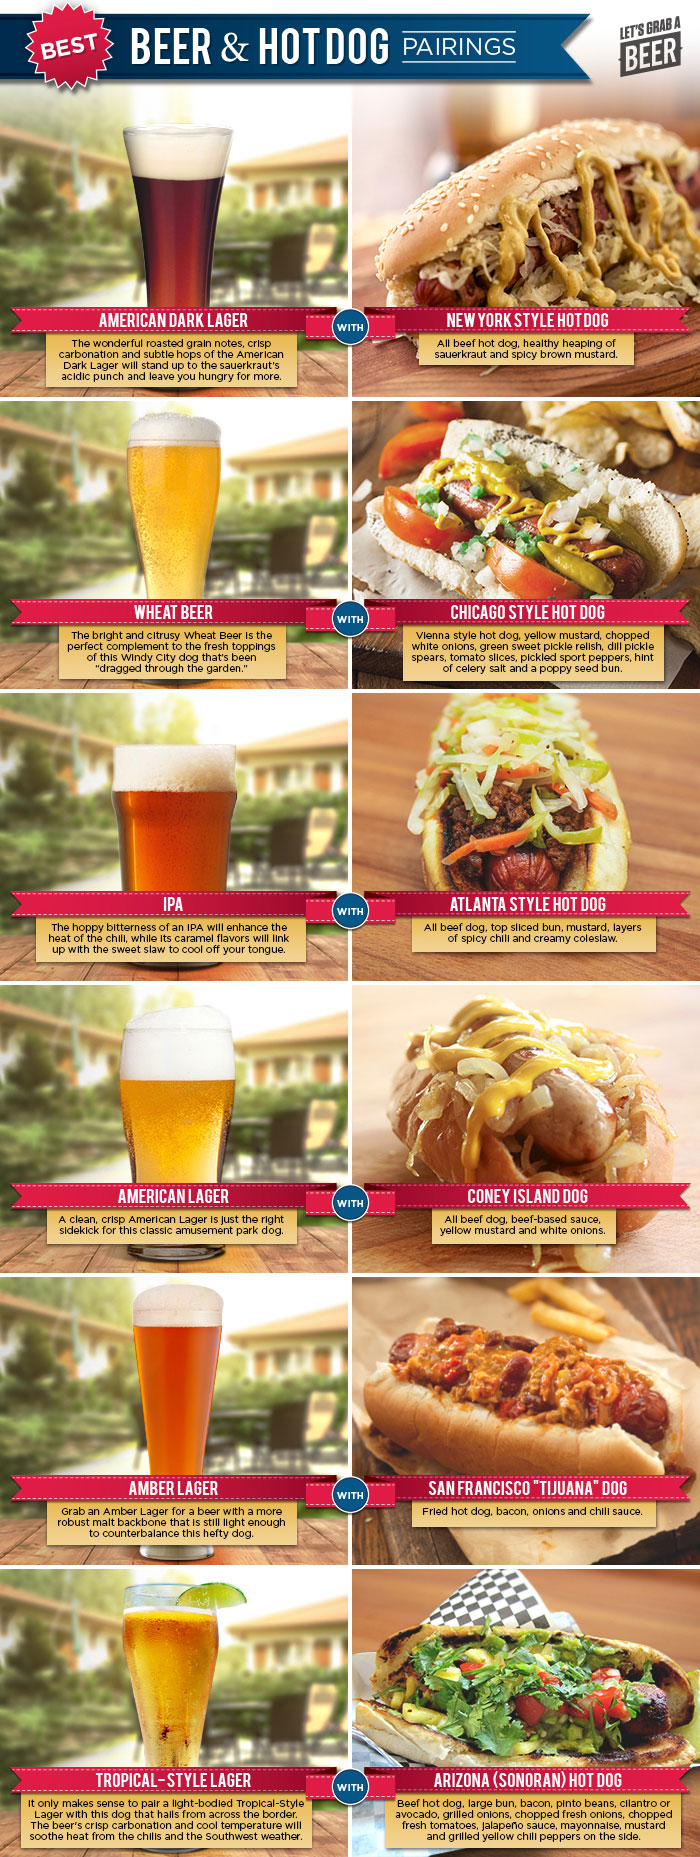 Beer Hot Dog Pairings 3 The best drinks to pair with Hot Dogs on #NationalHotDogDay